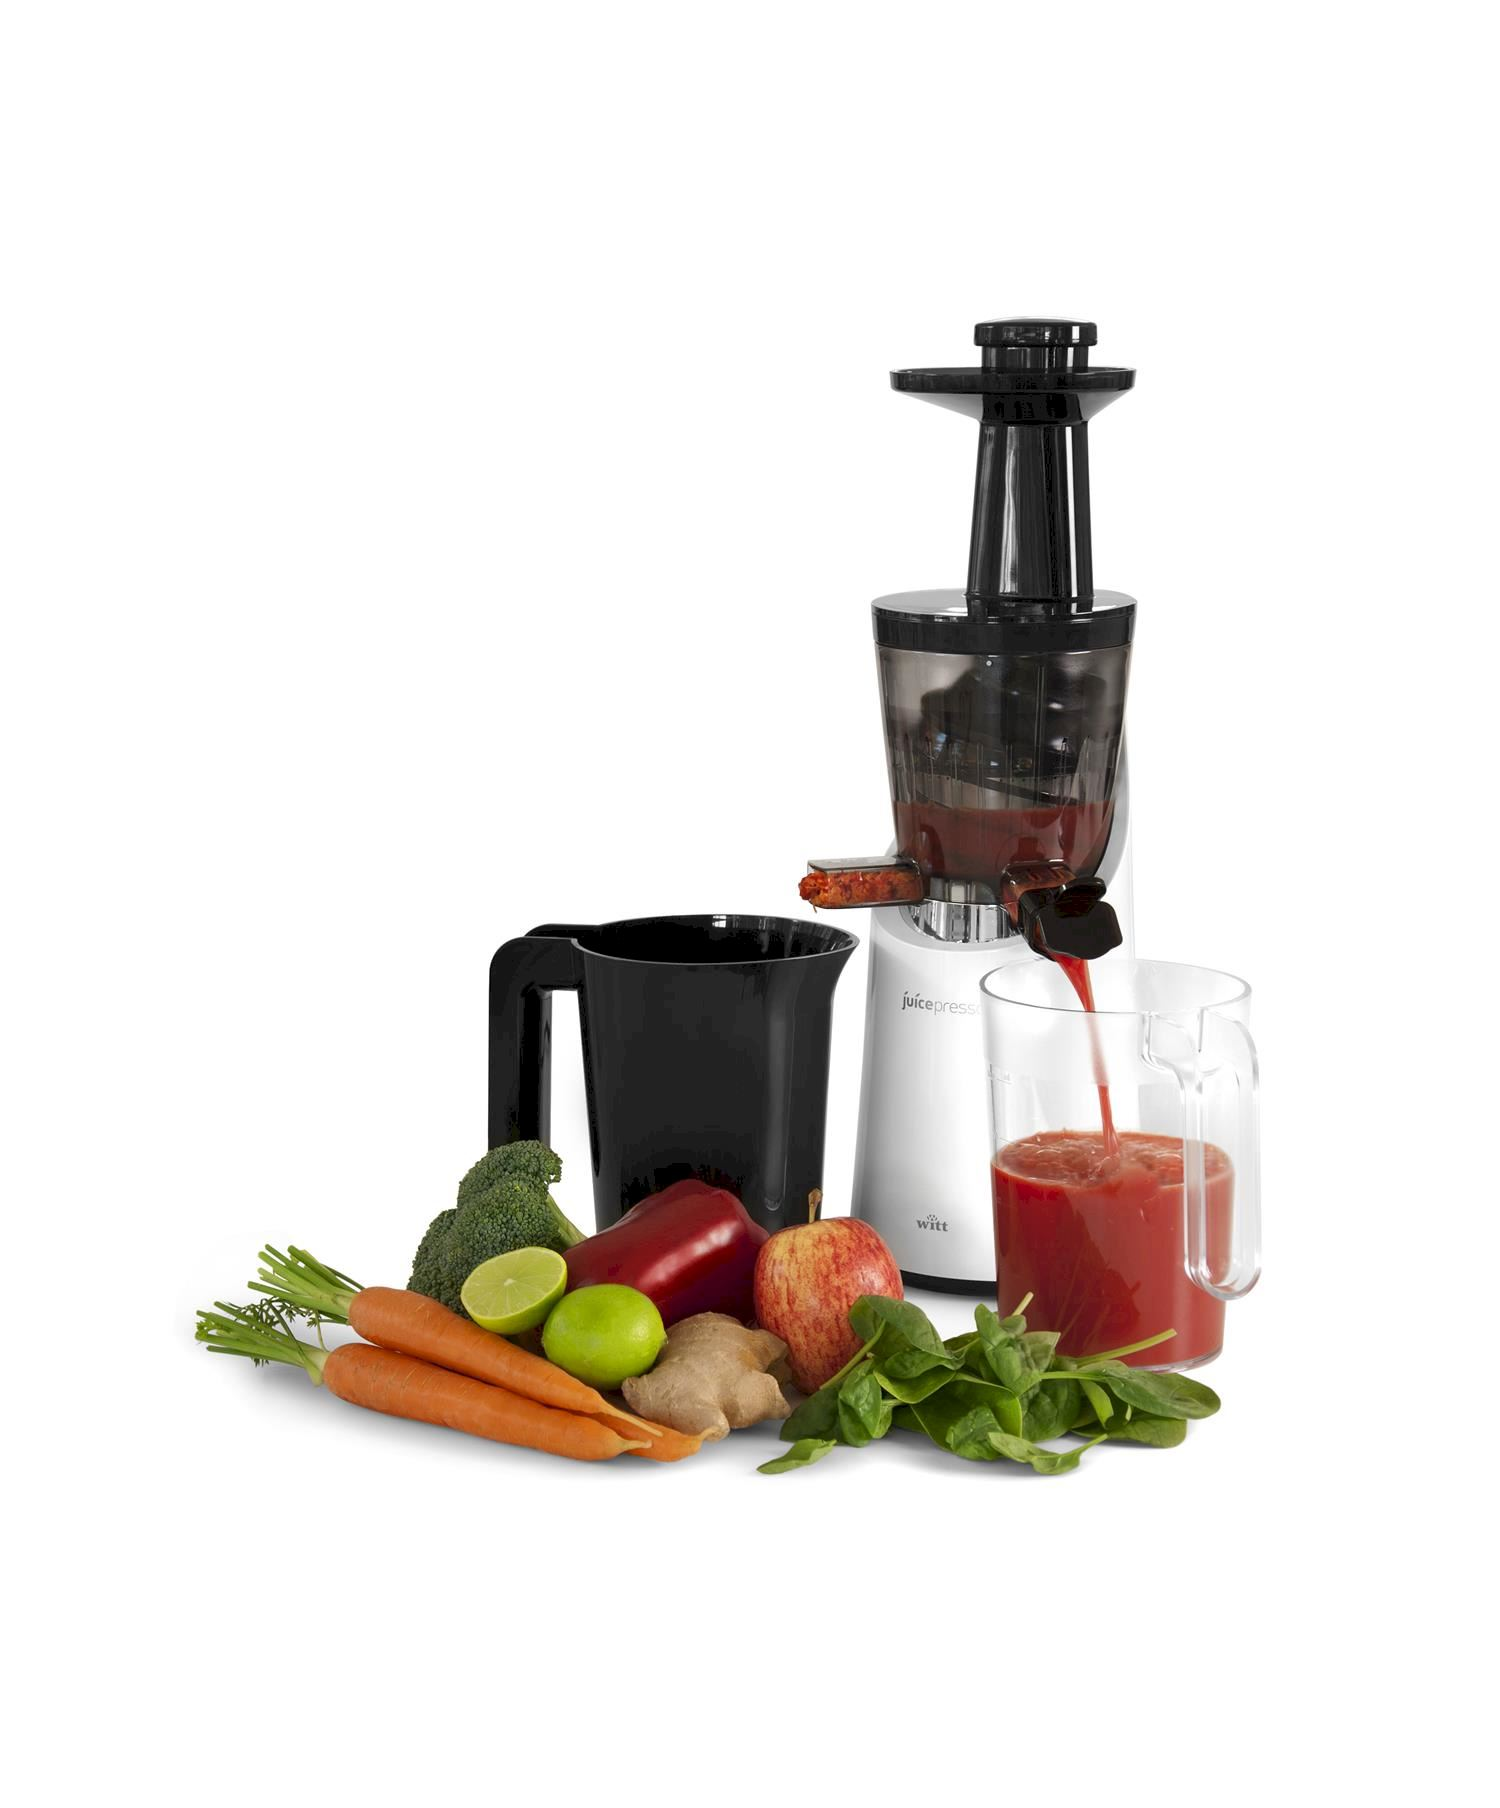 Witt by Kuvings Slow Juicer